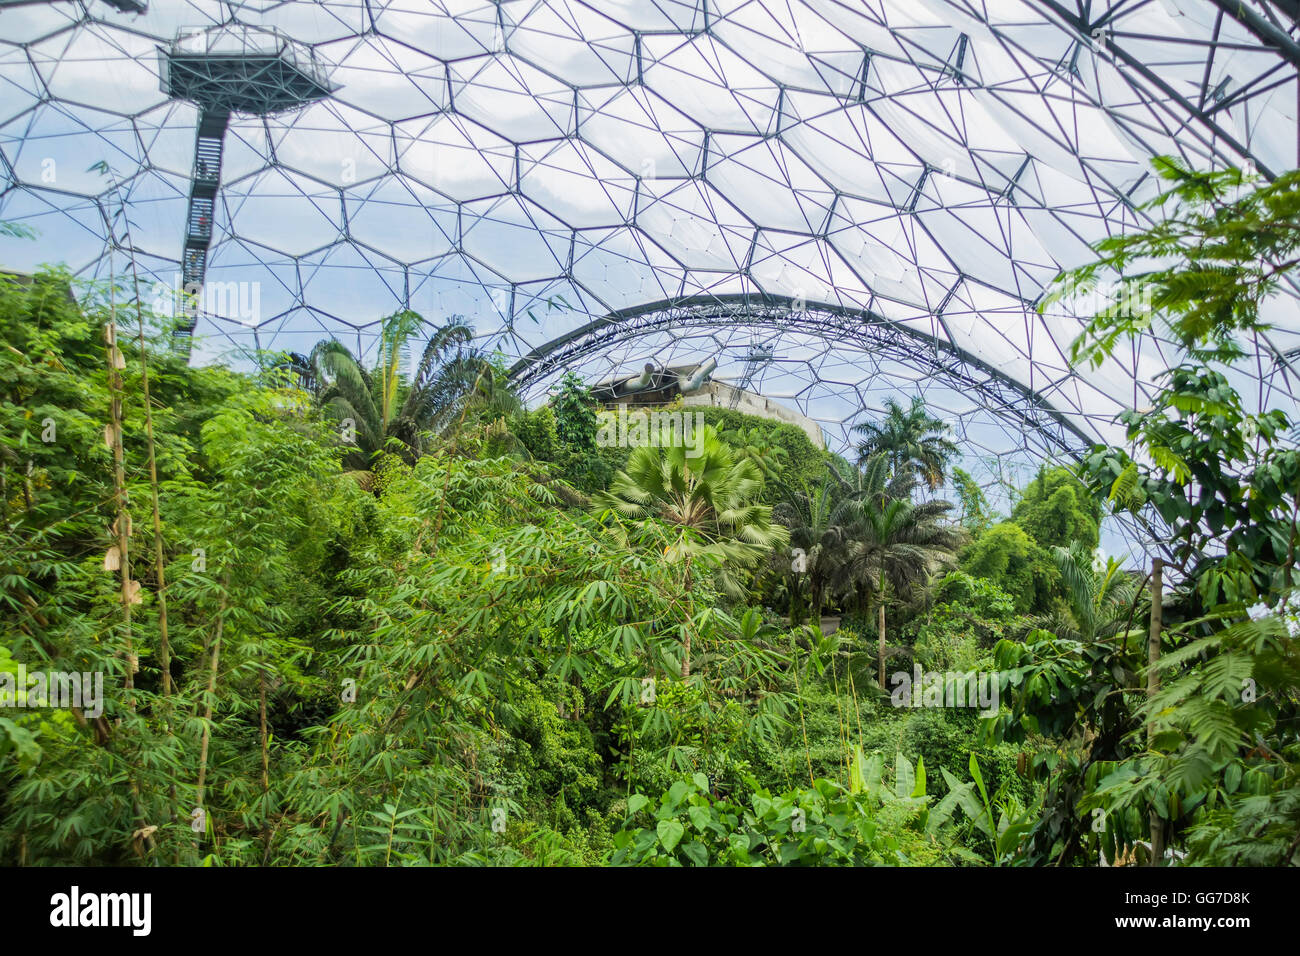 The rainforest biome of the Eden project in cornwall england - Stock Image